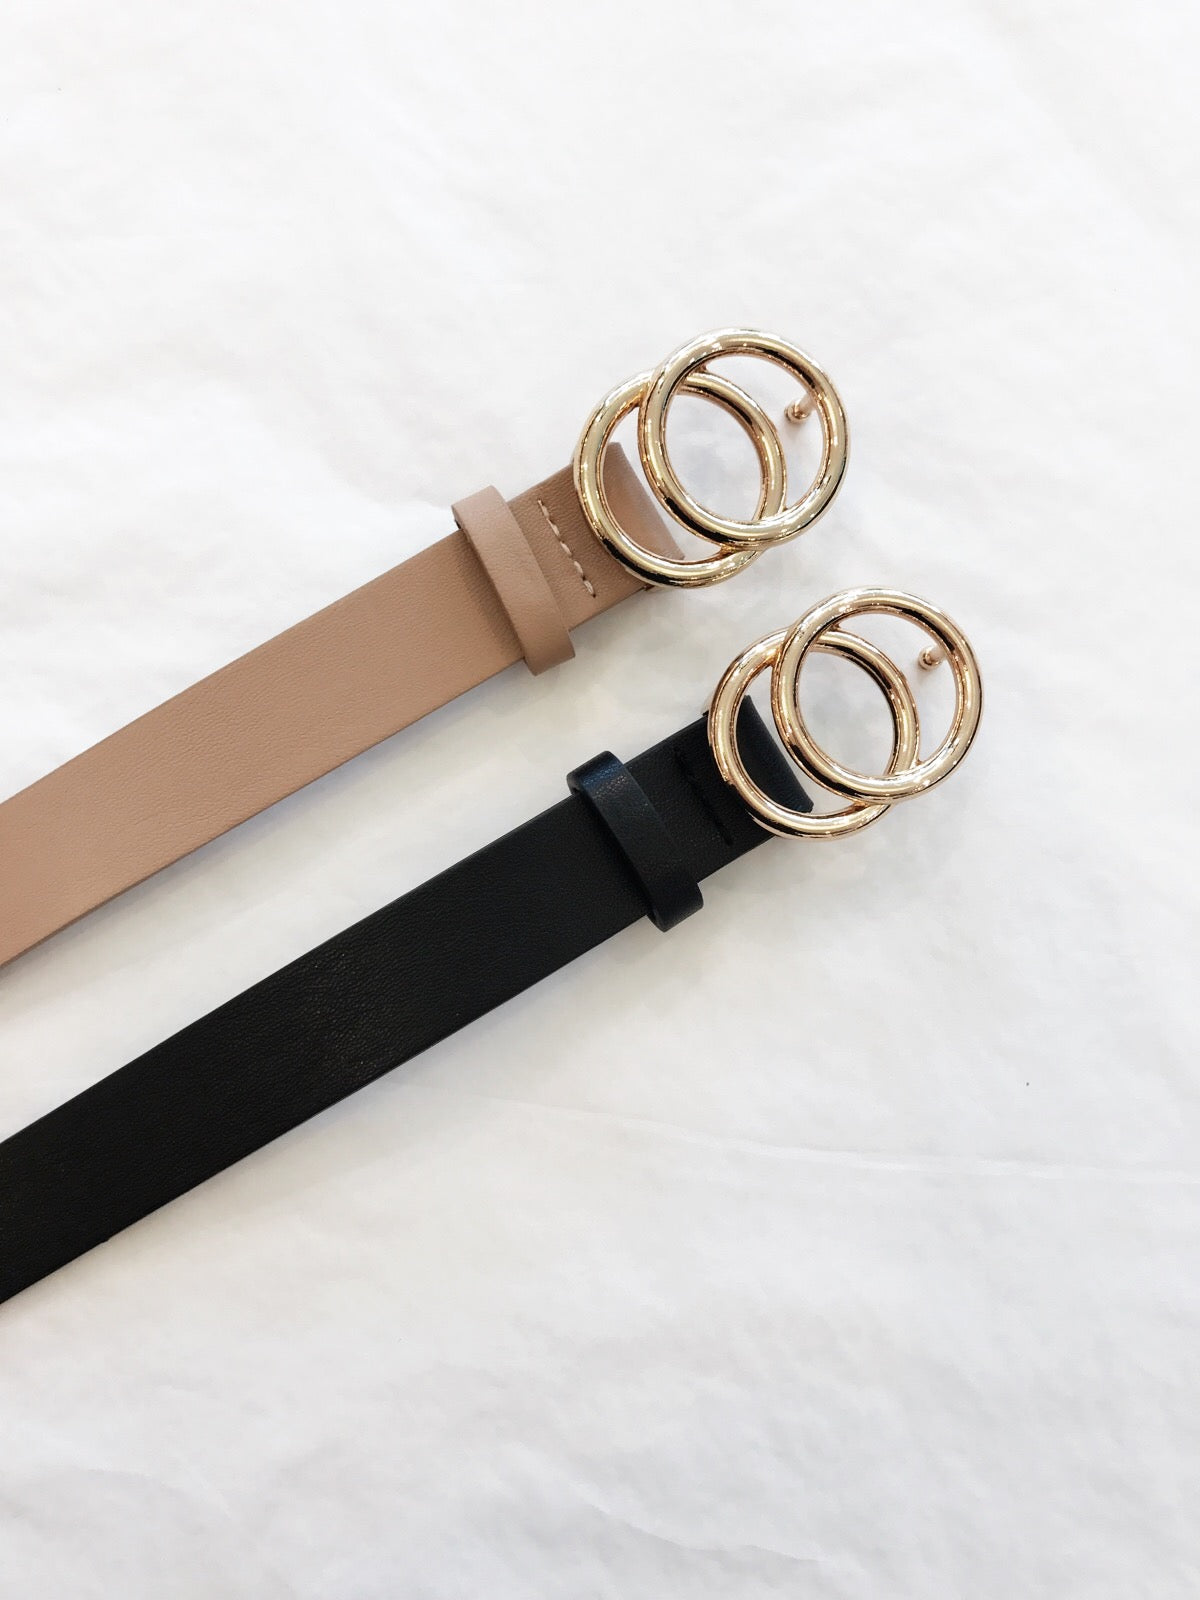 Discover our range of belts this season. Whether it's a low key style or a stylish going out piece, boohoo has you covered with our womens belts today. Black Waist Belt With Gold Chain Detail £ Skinny Metal Waist Belt £ Chain Waist Belt £ Metal Waist Belt £ Large Buckle PU and Elastic Western Belt £ Plus.